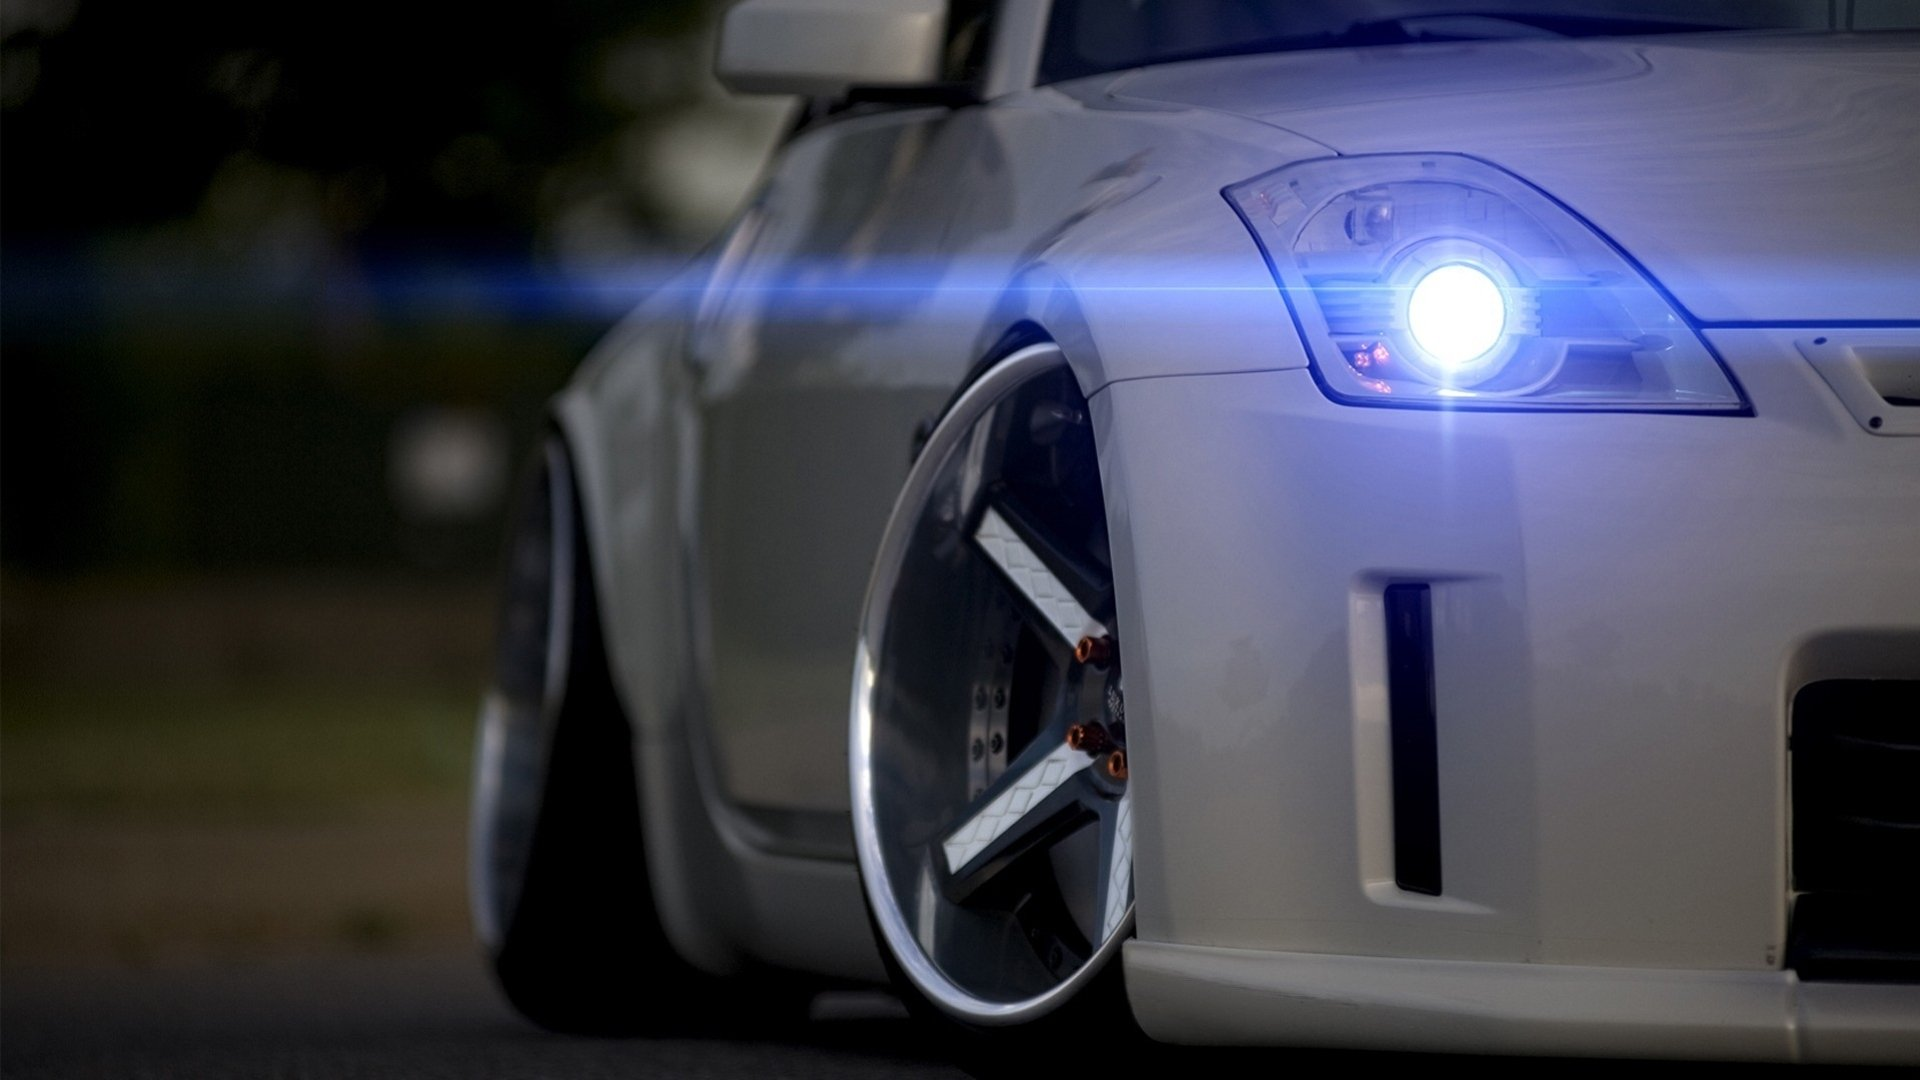 1920x1080 - Nissan 350Z Wallpapers 14